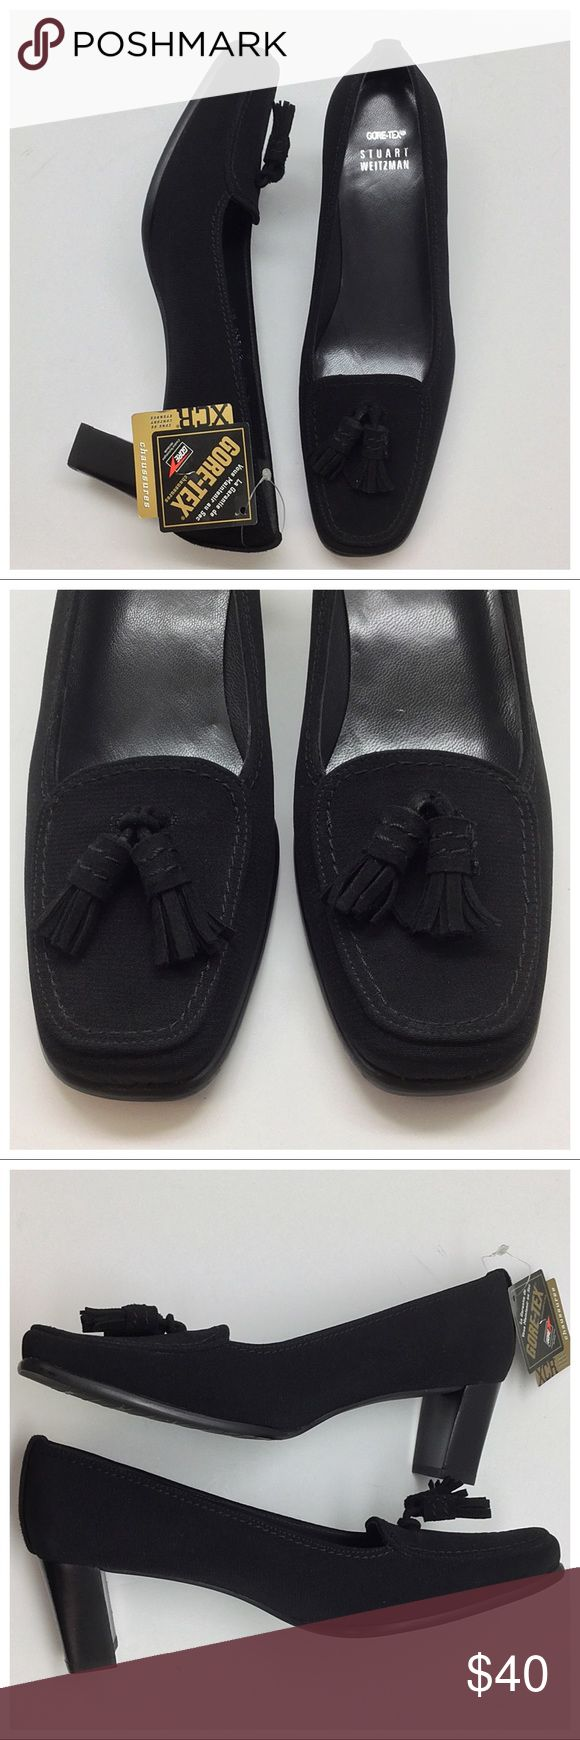 "☔️ Stuart Weitzman Waterproof Pump ☔️ 🚫Trades/Holds🚫 SW Pumps *  Black fabric w/ Gore-Tex for waterproofing *  Suede tassels & heel panel *  Rubber sole w/ logo *  Marked size 7 ½ W, measures 10 1/4"" from toe-heel along footbed, 3 ¼"" across widest part of sole, *  'W' usually means wide but I think these are medium/average width: 3 1/4"" width is considered medium *  Never worn, Gore-Tex tag still attached but 1 heel has faint scuff from storage Plz ask ?s if unsure of anything, esp. about…"